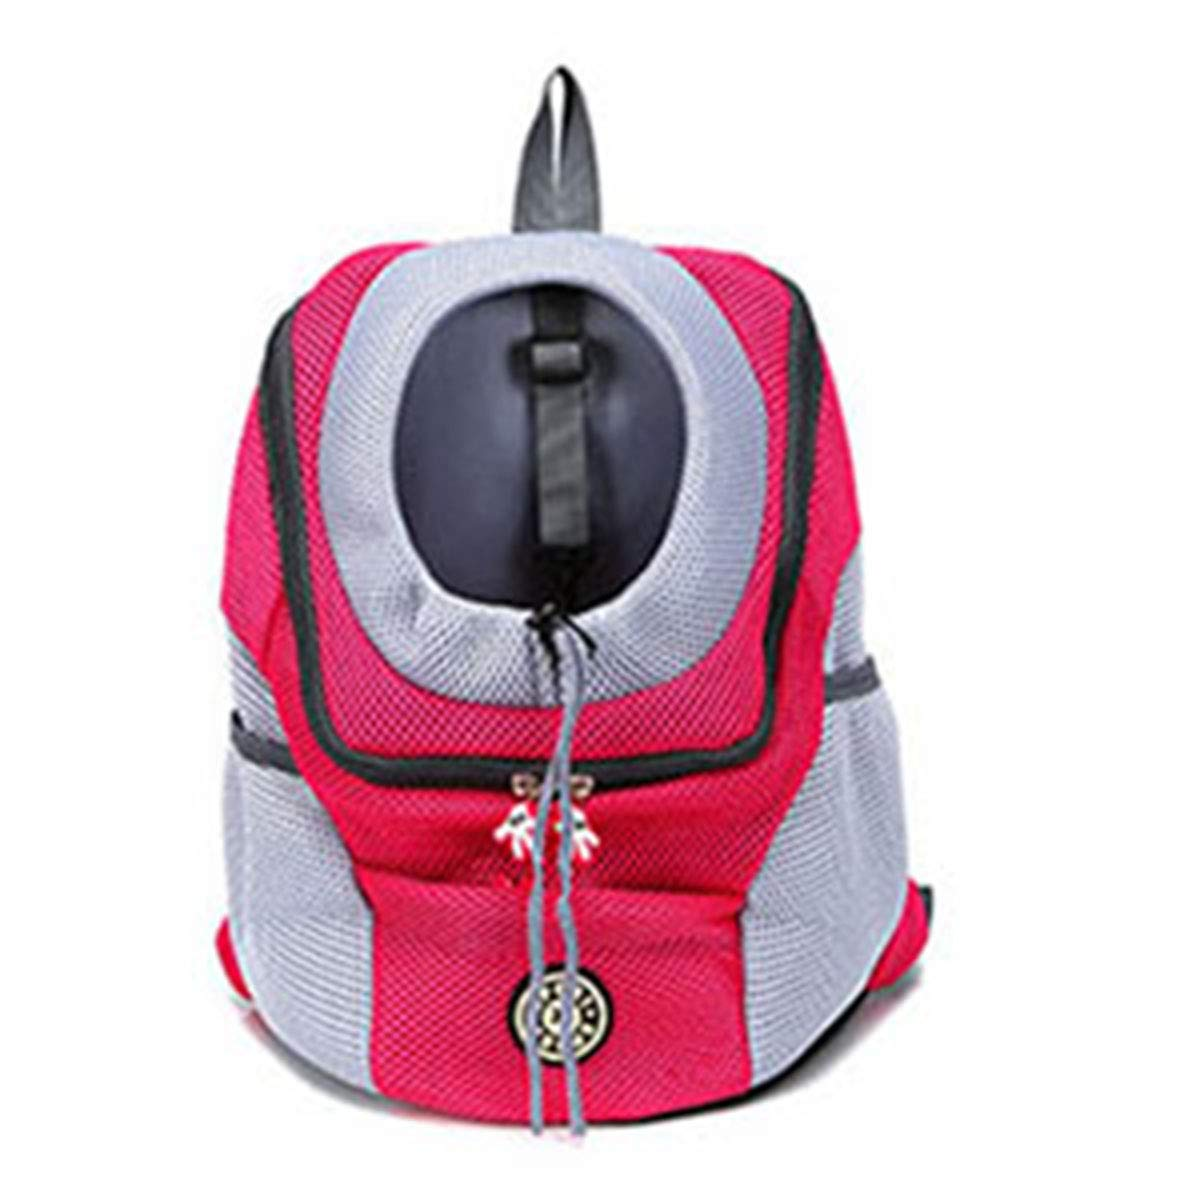 Red 36x45x21 cm Red 36x45x21 cm PETFDH New Out Double Shoulder Portable Travel Backpack Outdoor Pet Dog Carrier Bag Pet Dog Front Bag Mesh Backpack Head Red 36x45x21 cm